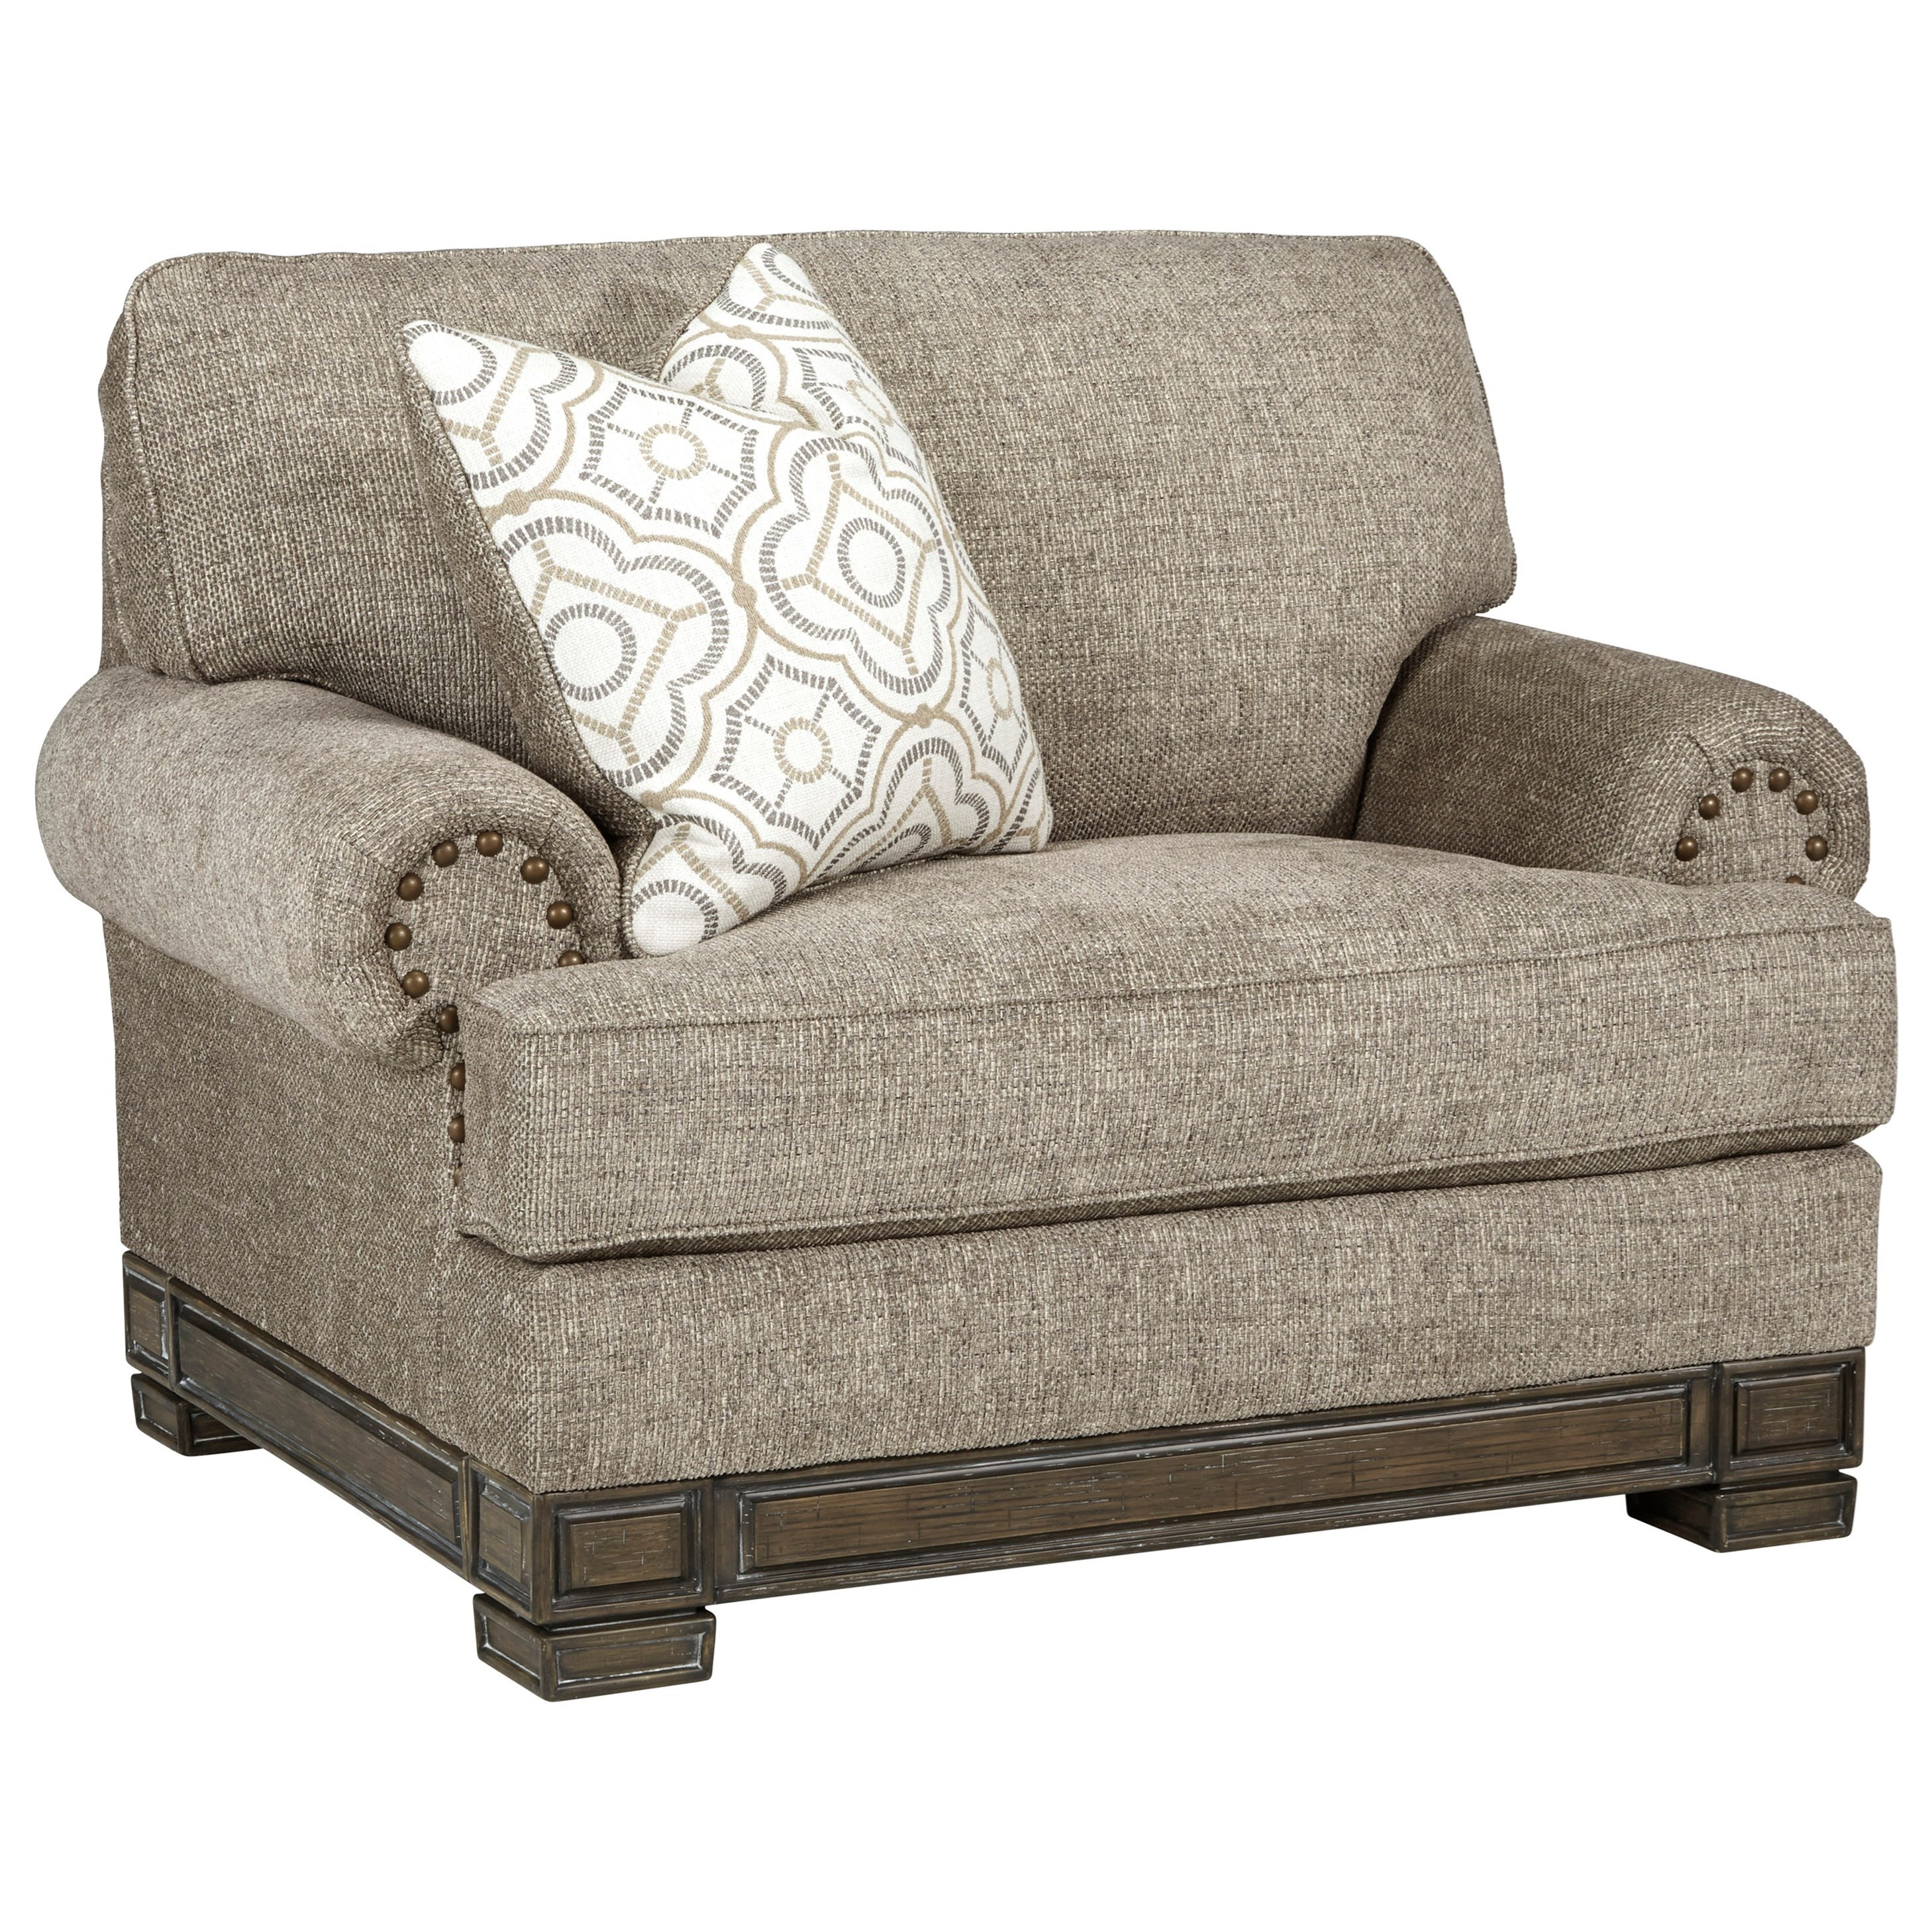 Einsgrove Chair and a Half by Signature at Walker's Furniture